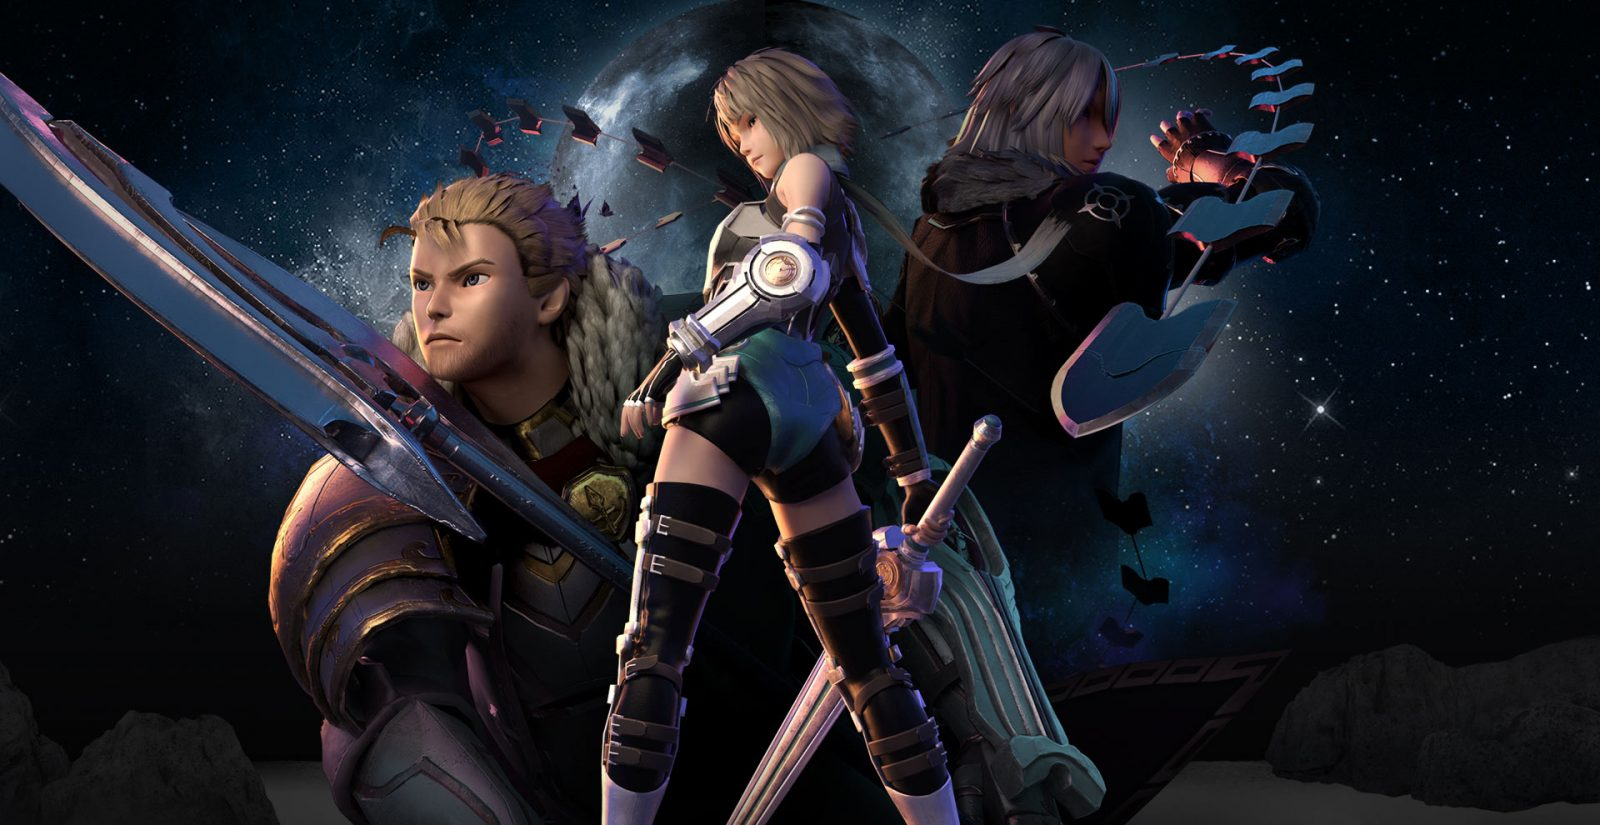 Puzzle-platformer Sequel Aeternoblade II Now Available on Consoles